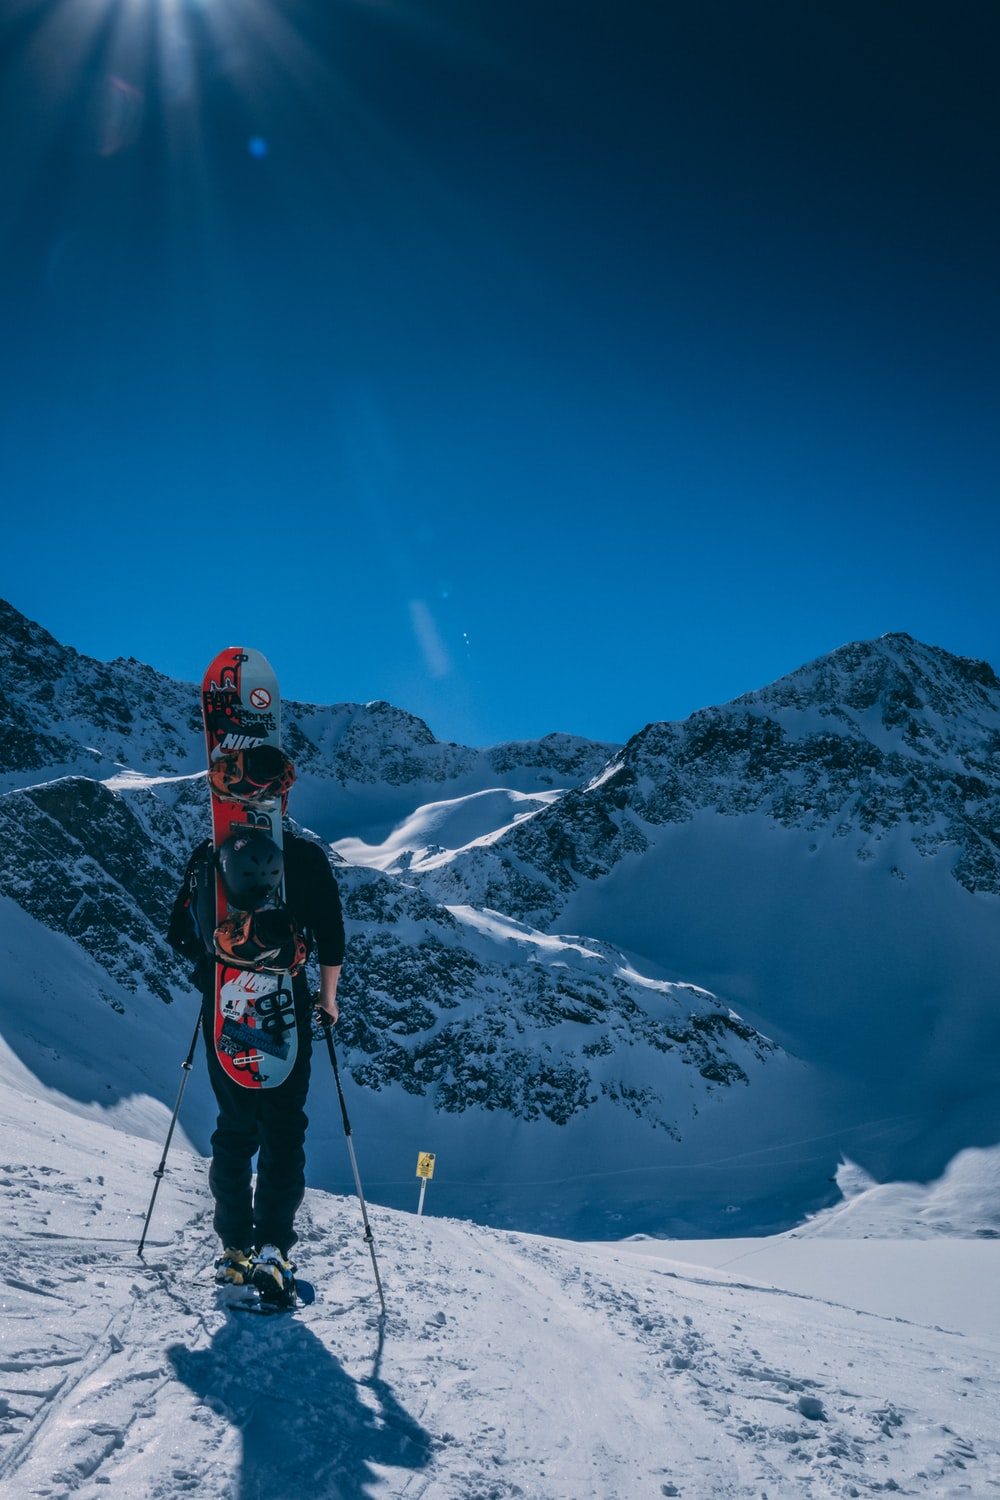 person standing on mountains with snow during daytime